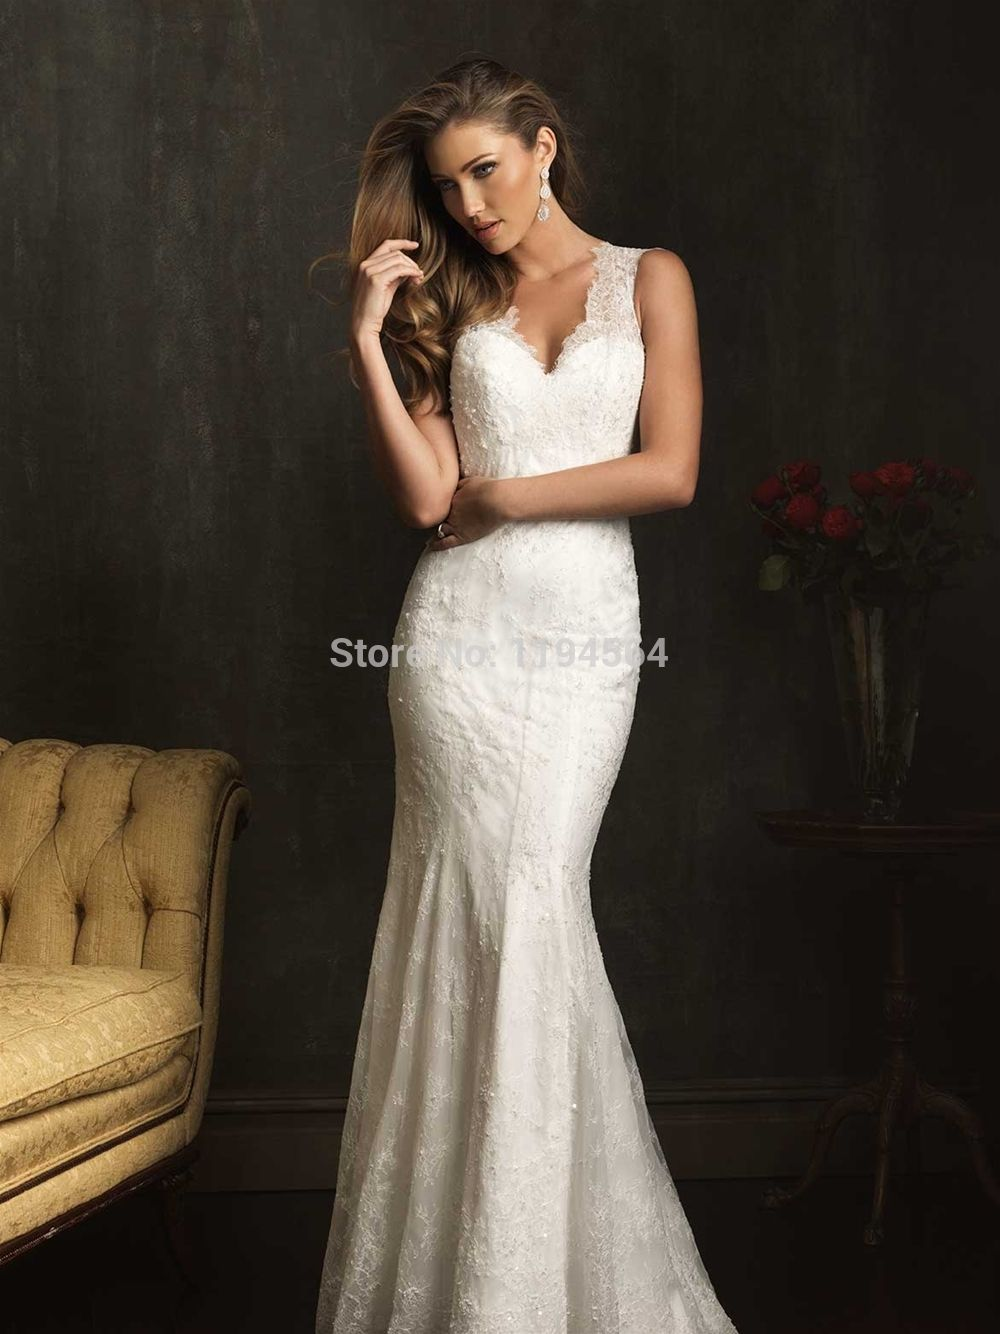 Mermaid lace wedding dress  Click to Buy ucuc Sheath Mermaid Lace Wedding Gowns  Beading